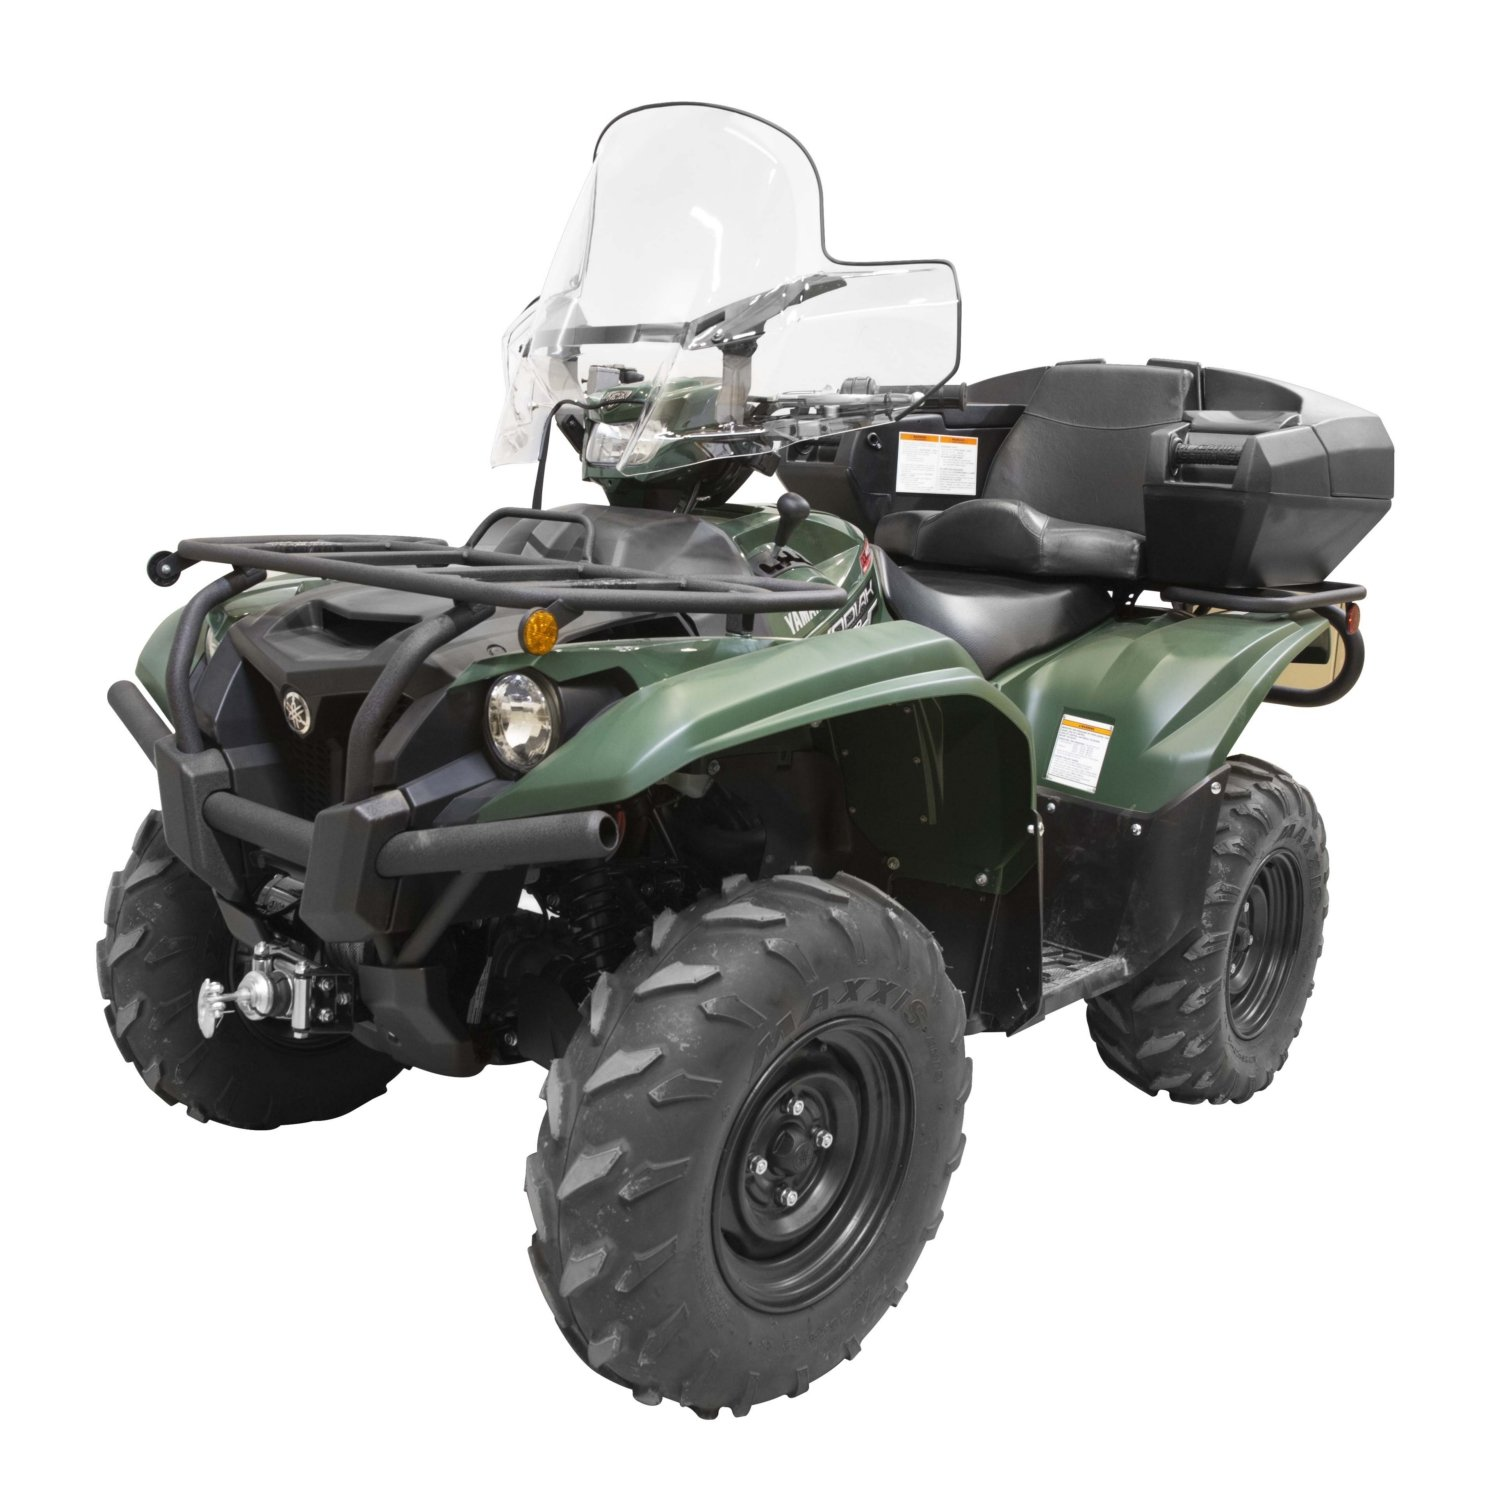 Kimpex ATV Front Windshield Gen 2 Clear Yamaha Kodiak Grizzly 2016-2018